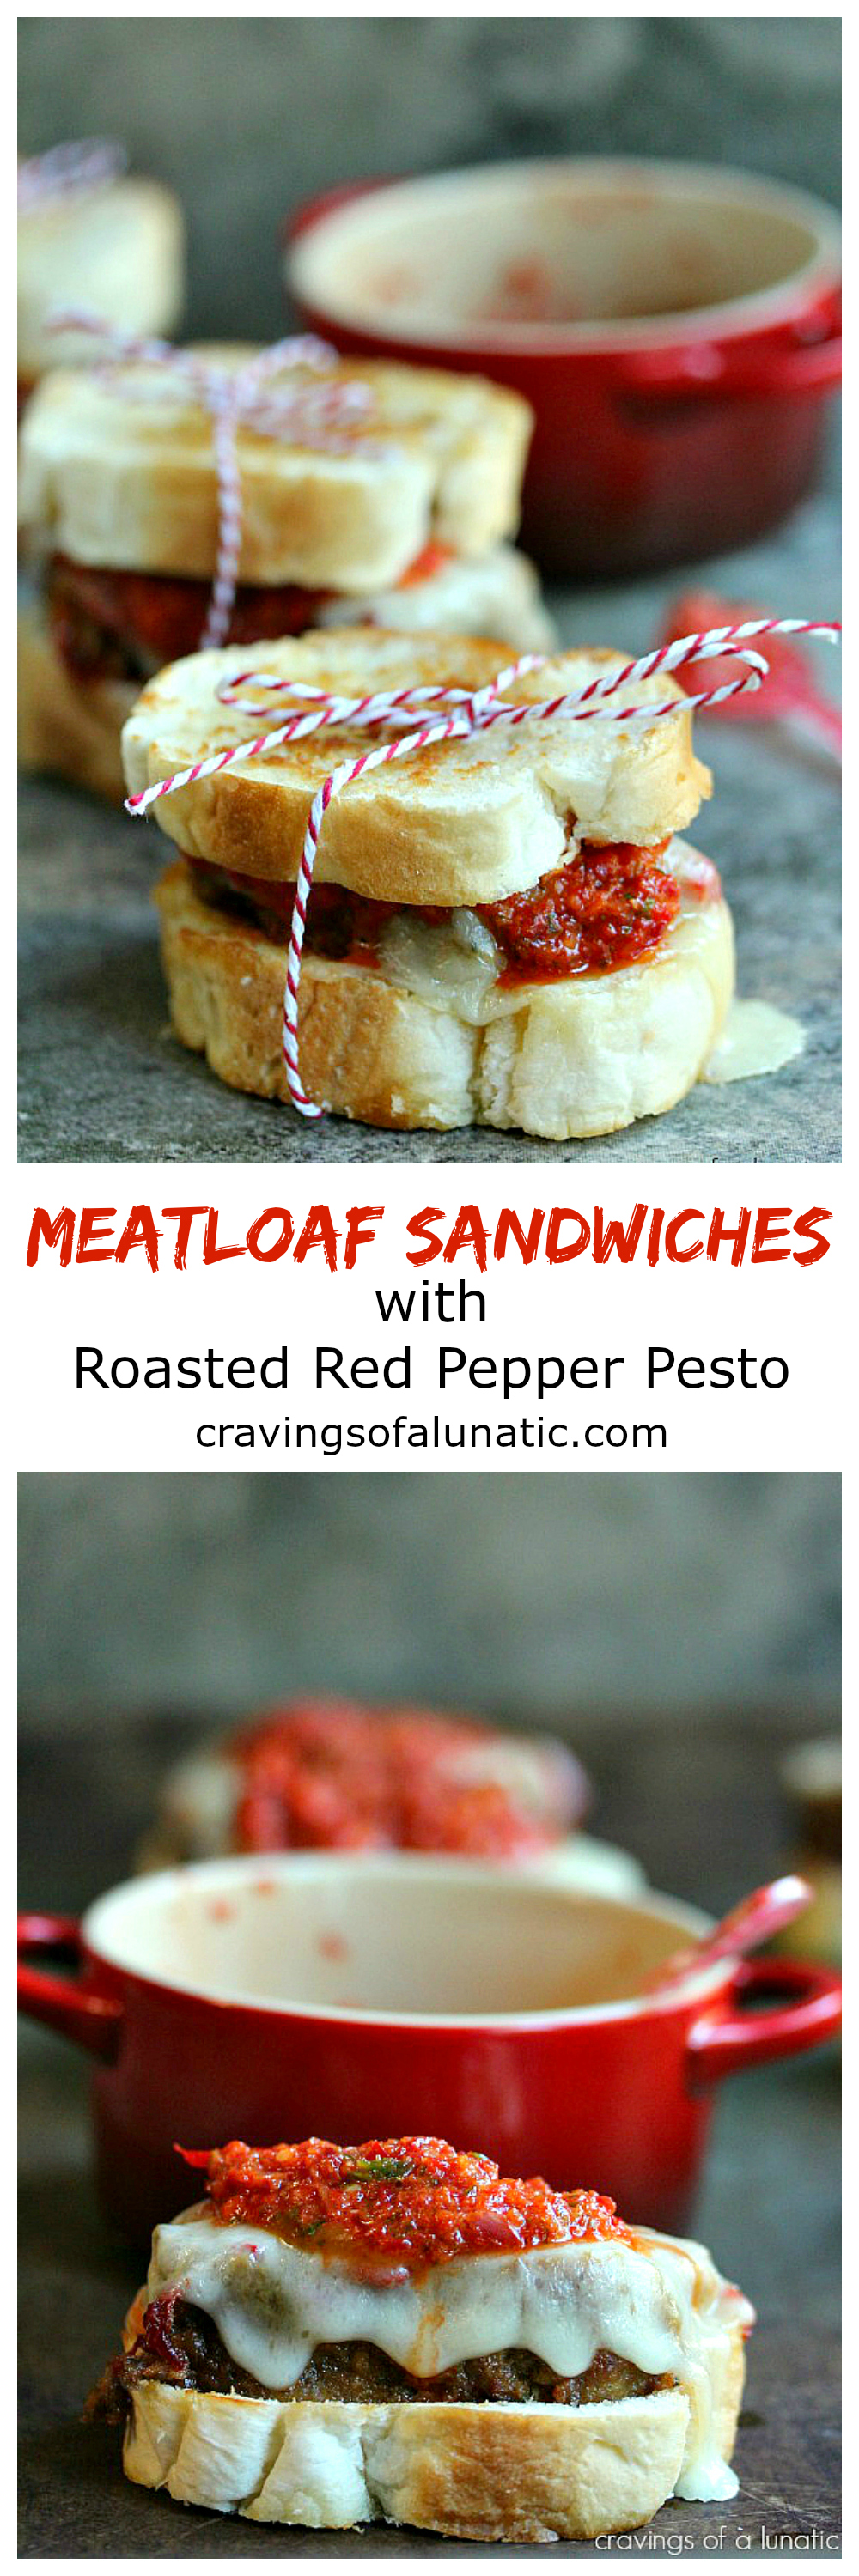 Mini Meatloaf Sandwiches with Red Pepper Pesto from cravingsofalunatiic.com- Start with meatloaf packed with roasted red peppers, then make mini sandwiches topped with BBQ Sauce, Provolone Cheese and Red Pepper Pesto. Perfect for game day. (CravingsLunatic)